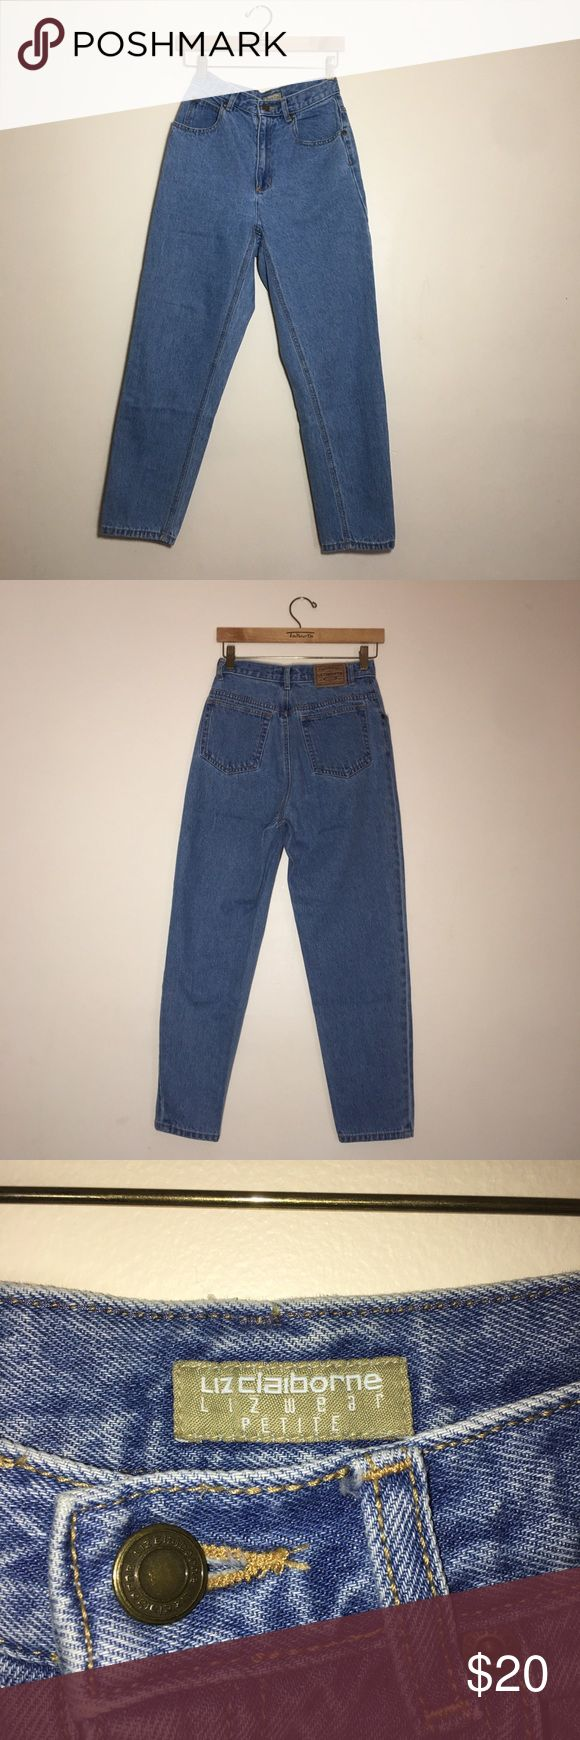 High waisted jeans size 6 High waisted jeans  Size 6  Great condition ! Like new  Ask any questions! Liz Claiborne Jeans